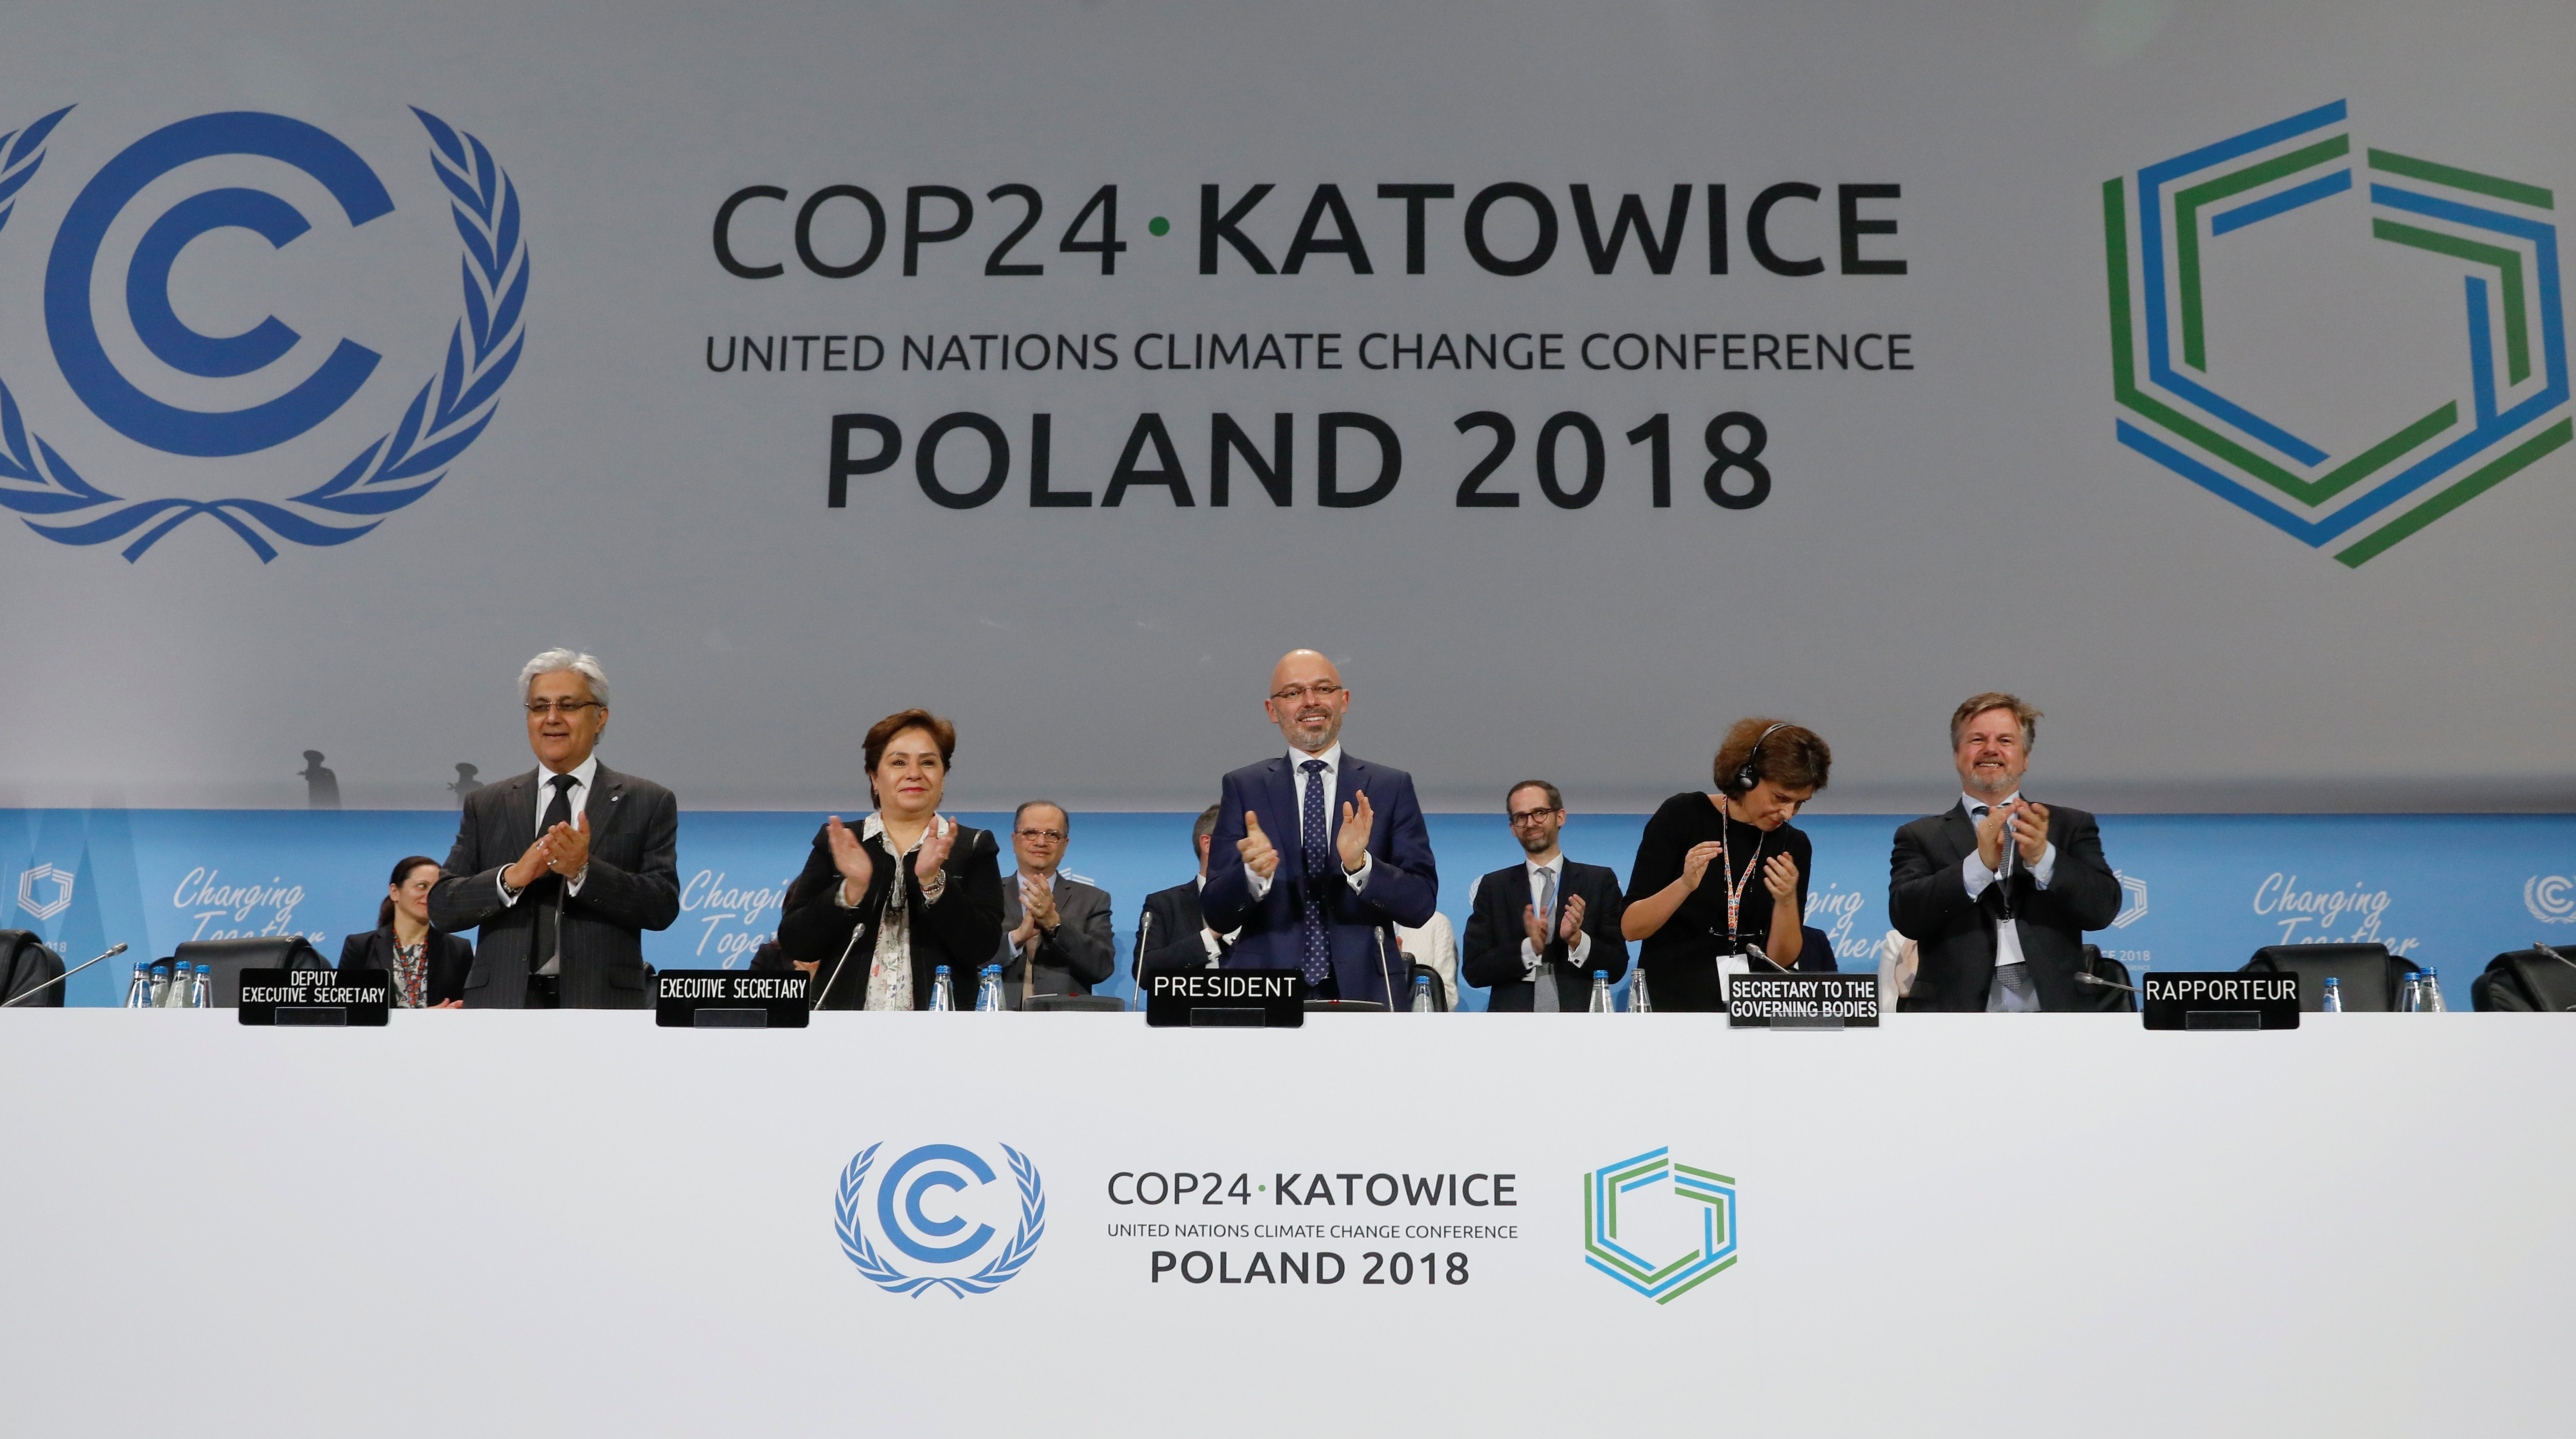 Final session of the COP24 U.N. Climate Change Conference 2018 in Katowice